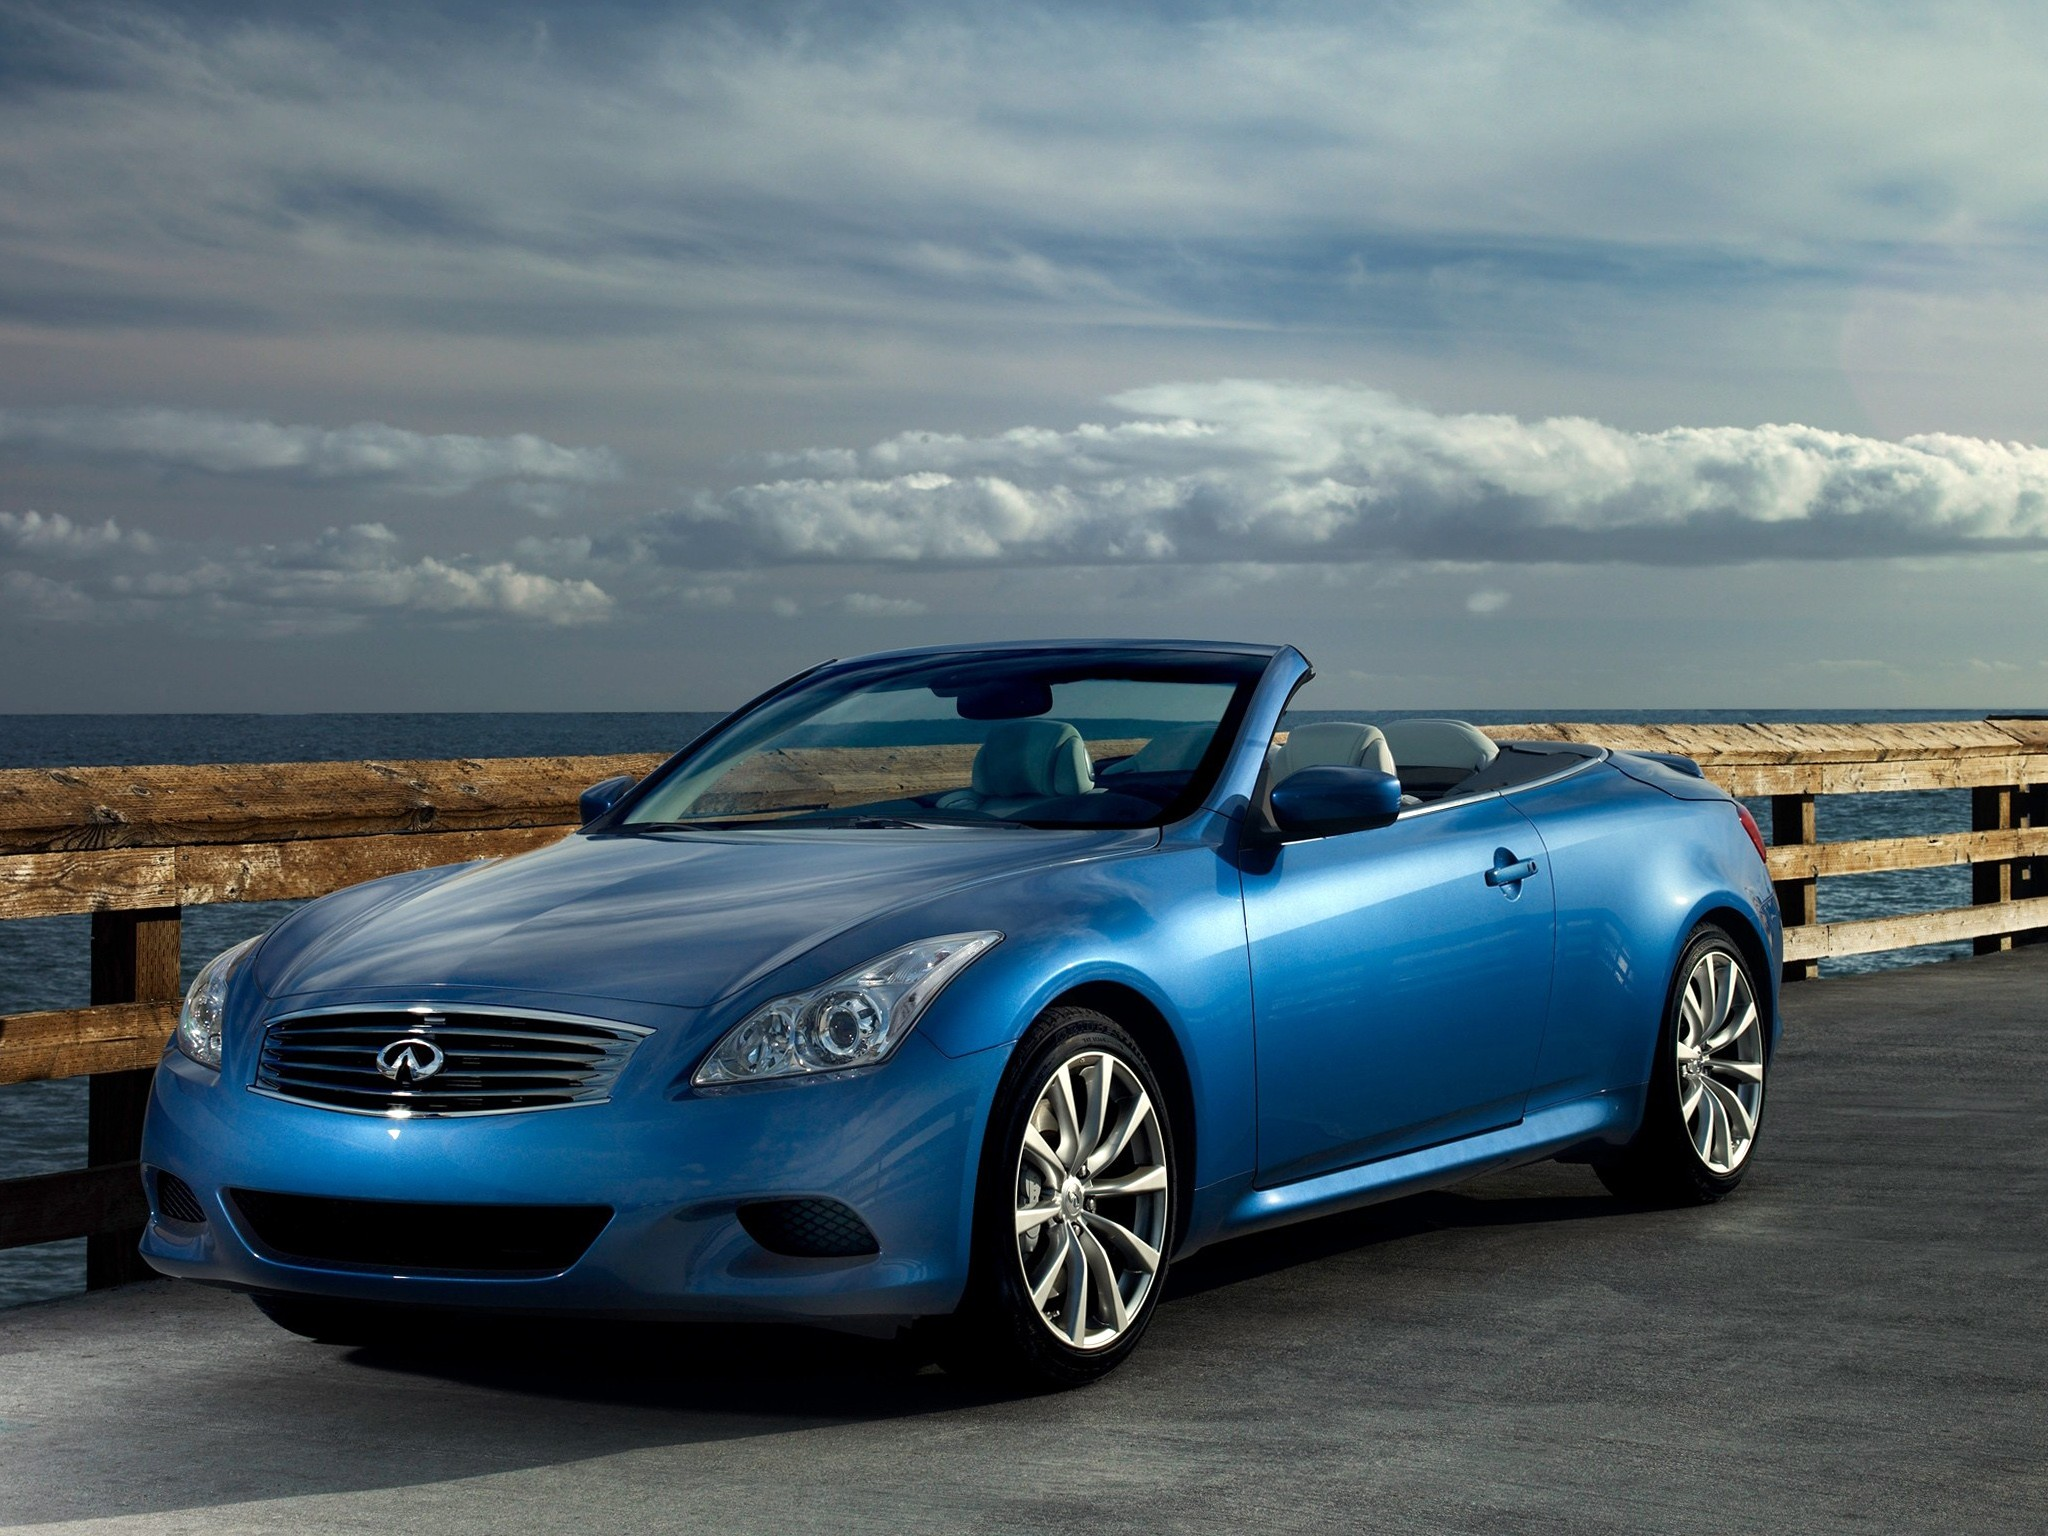 infiniti g37 convertible 2009 2010 2011 2012 2013 autoevolution. Black Bedroom Furniture Sets. Home Design Ideas